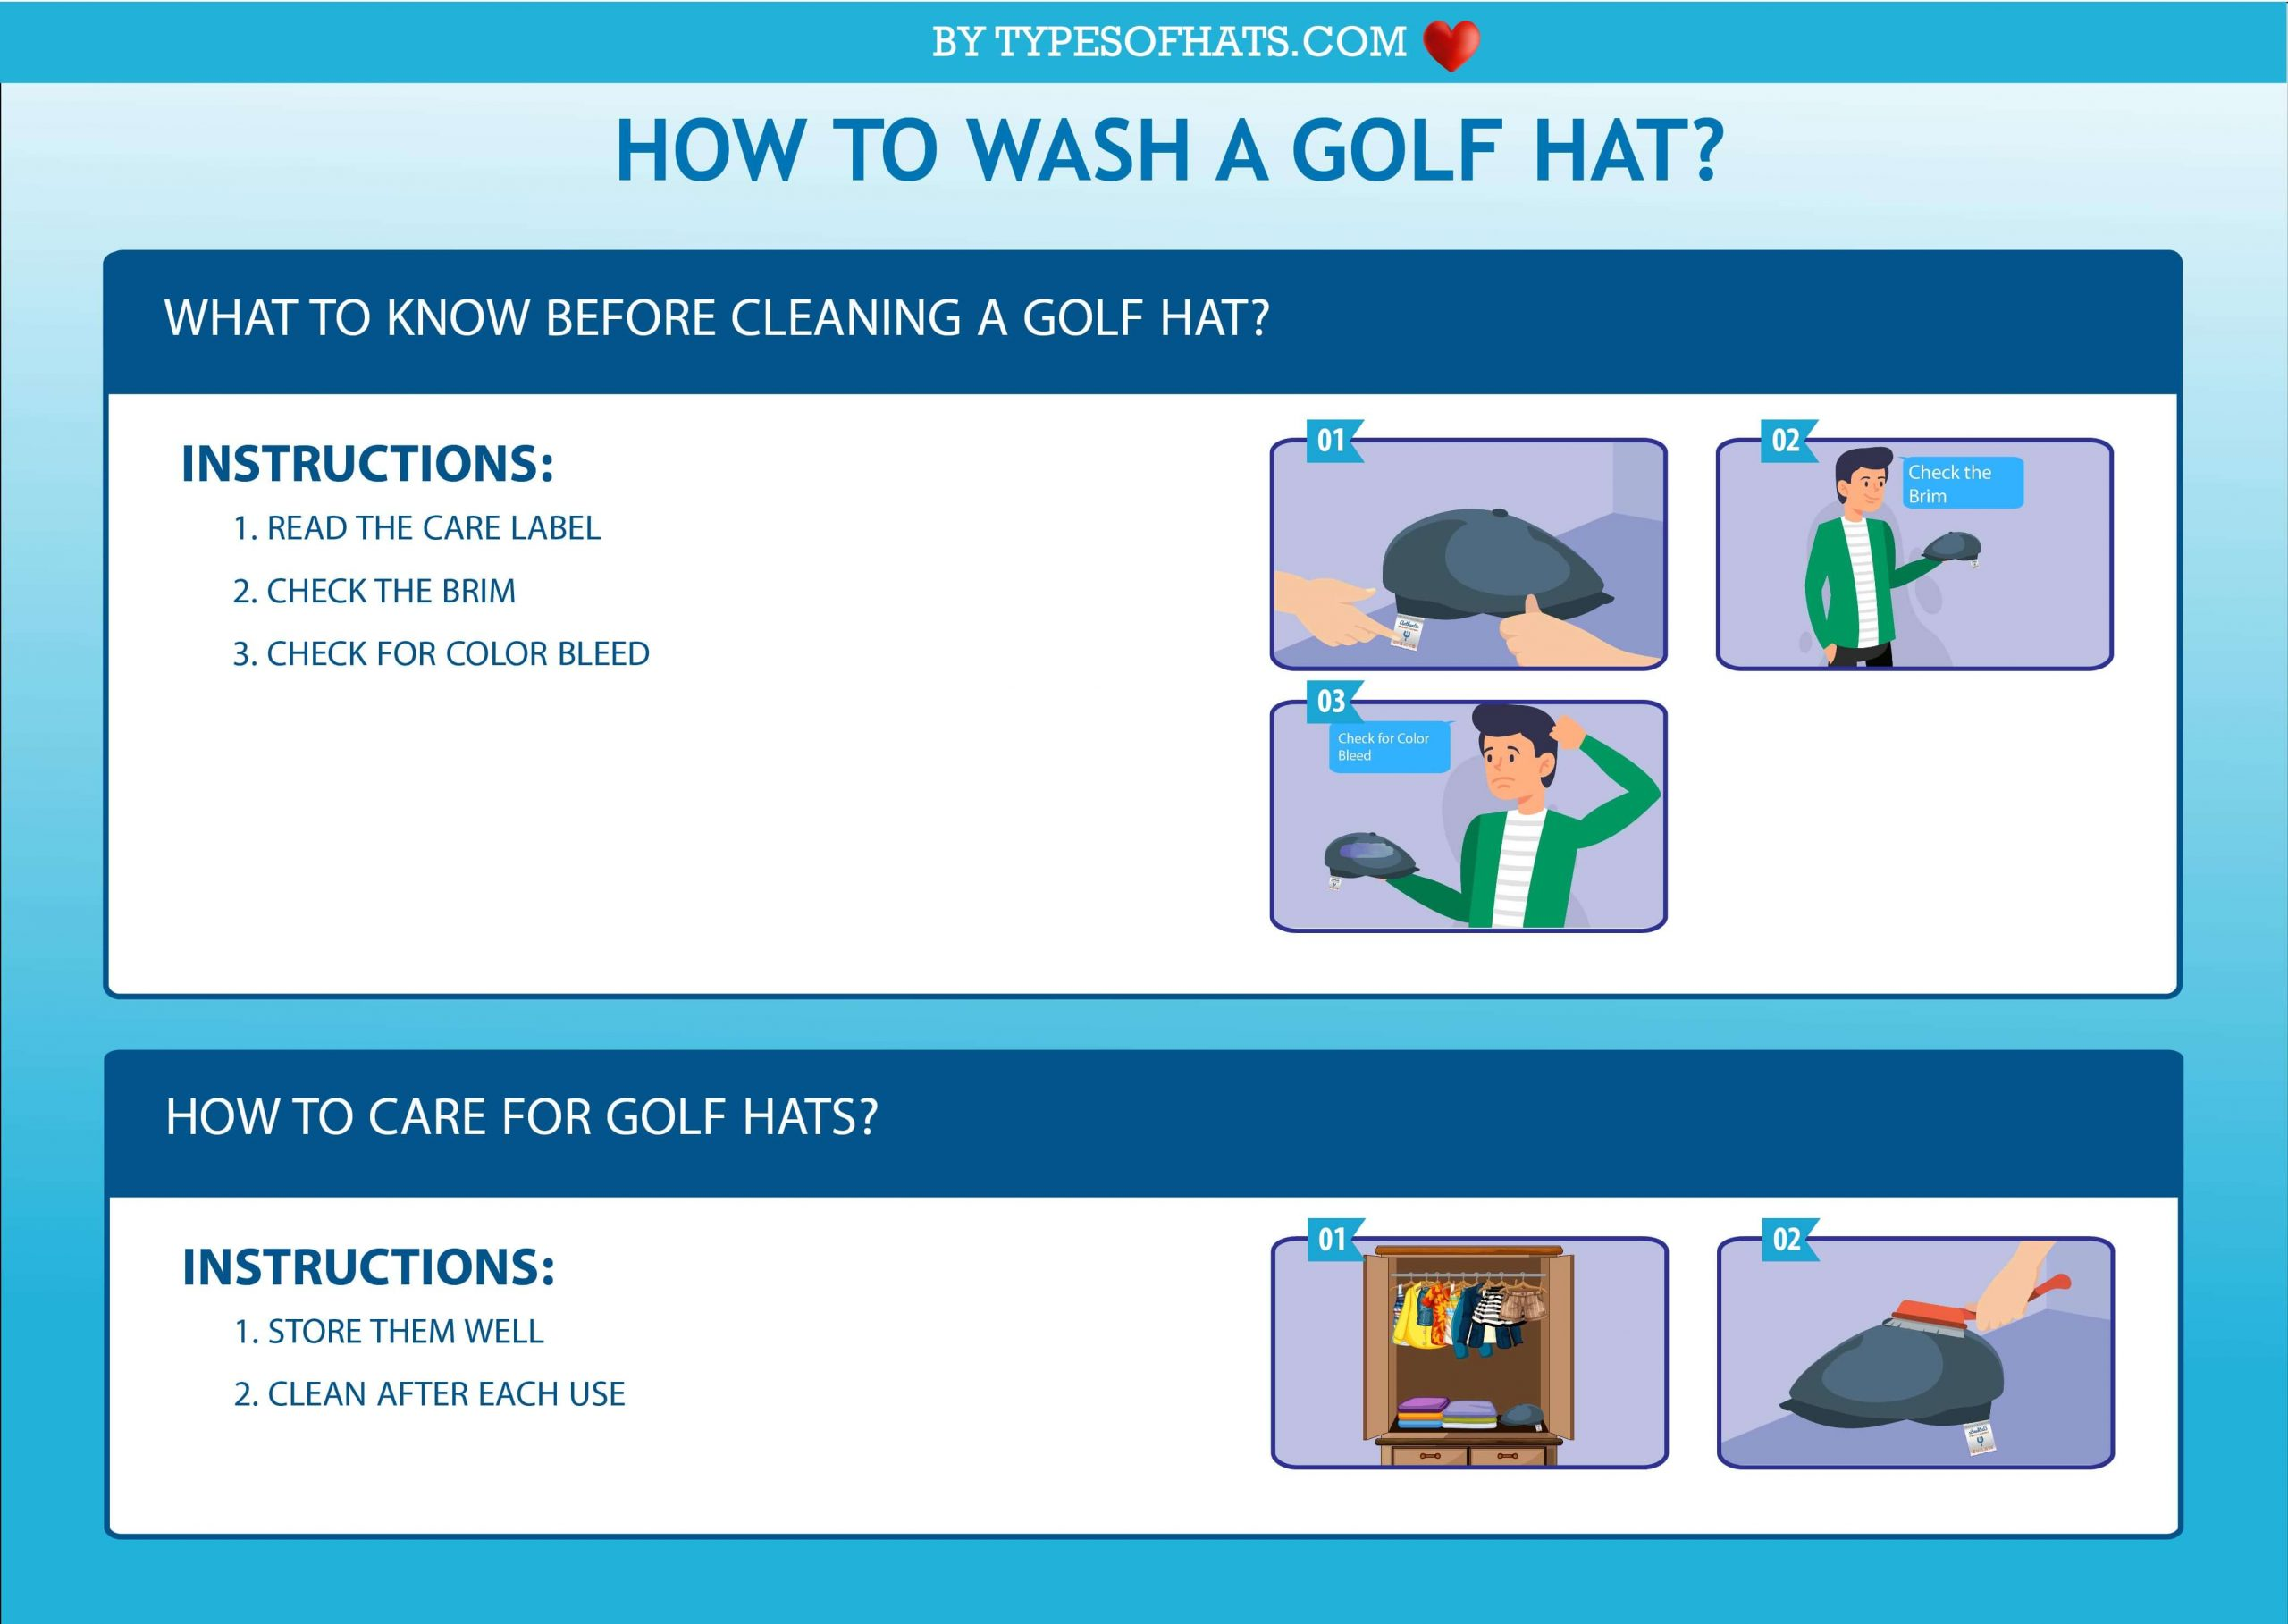 How To Wash A Golf Hat-For All Types of Golf Hats